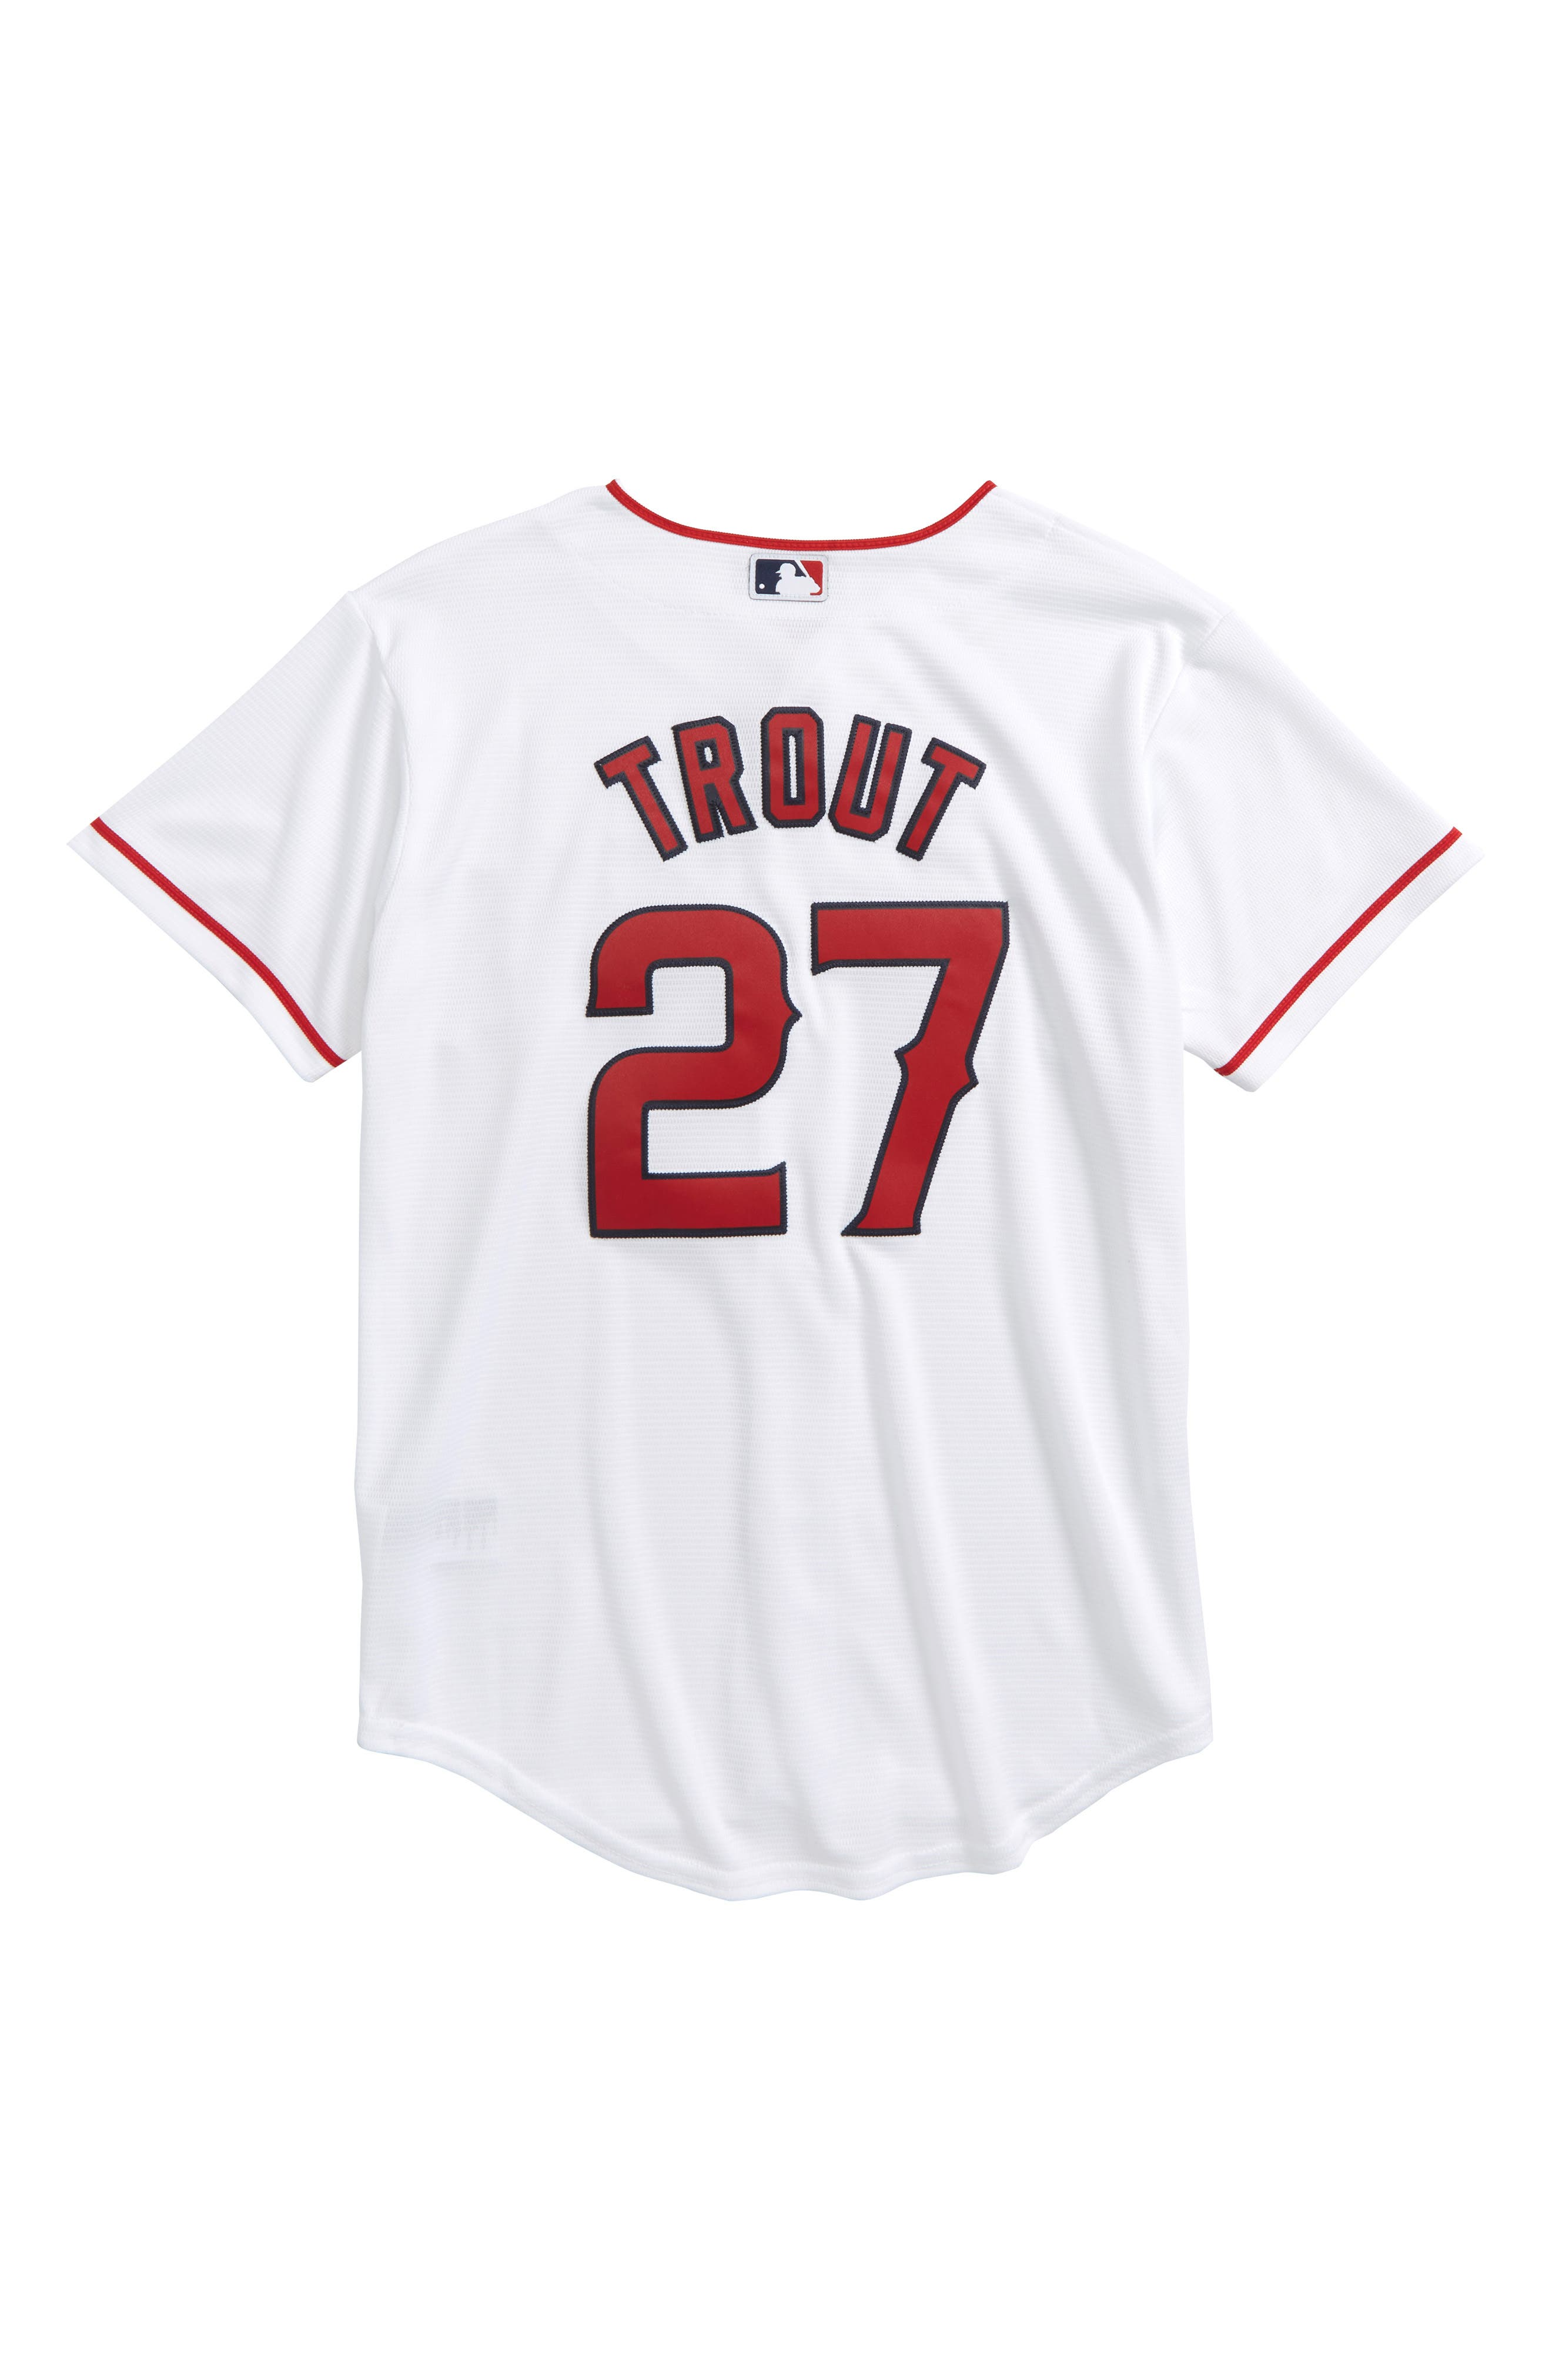 Los Angeles Angels - Mike Trout Baseball Jersey,                             Alternate thumbnail 2, color,                             100